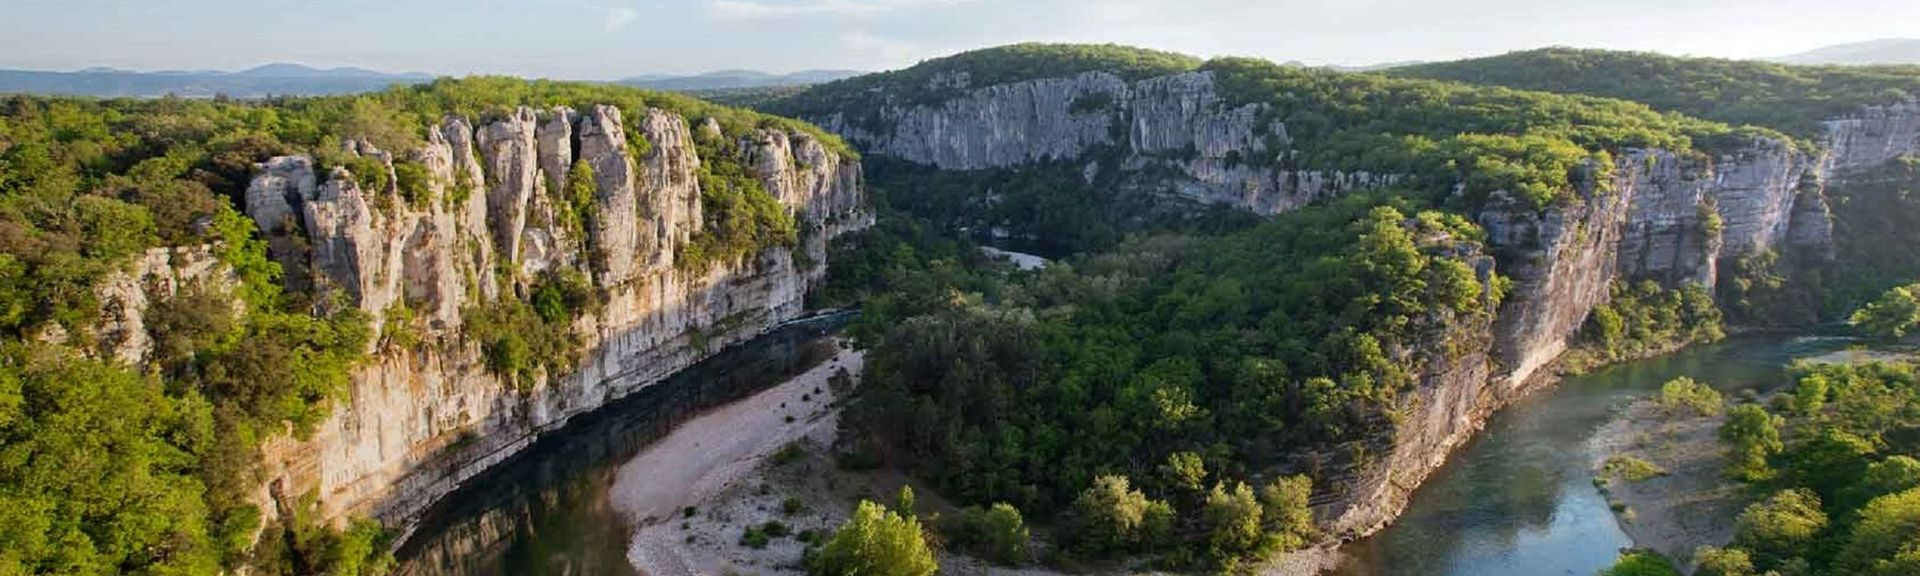 Mayres, Ardeche (department), France